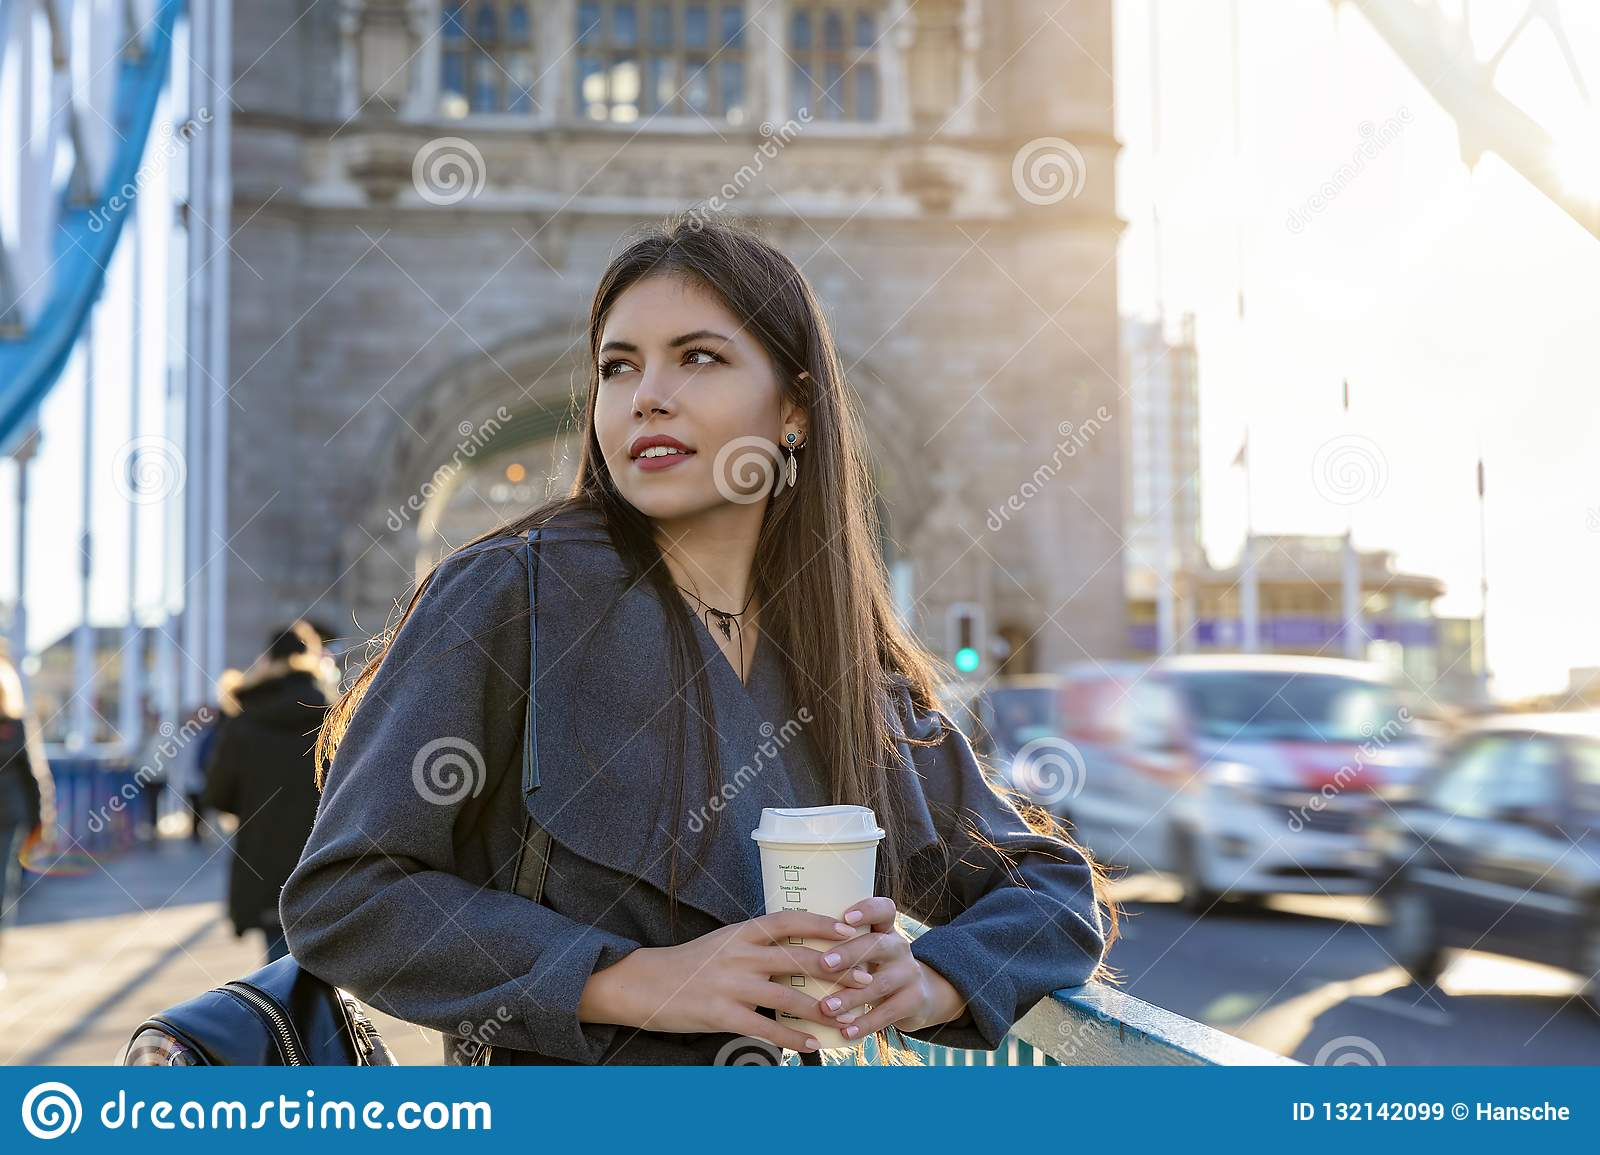 Woman on a street with a coffee in her hand, Tower Bridge, London, UK